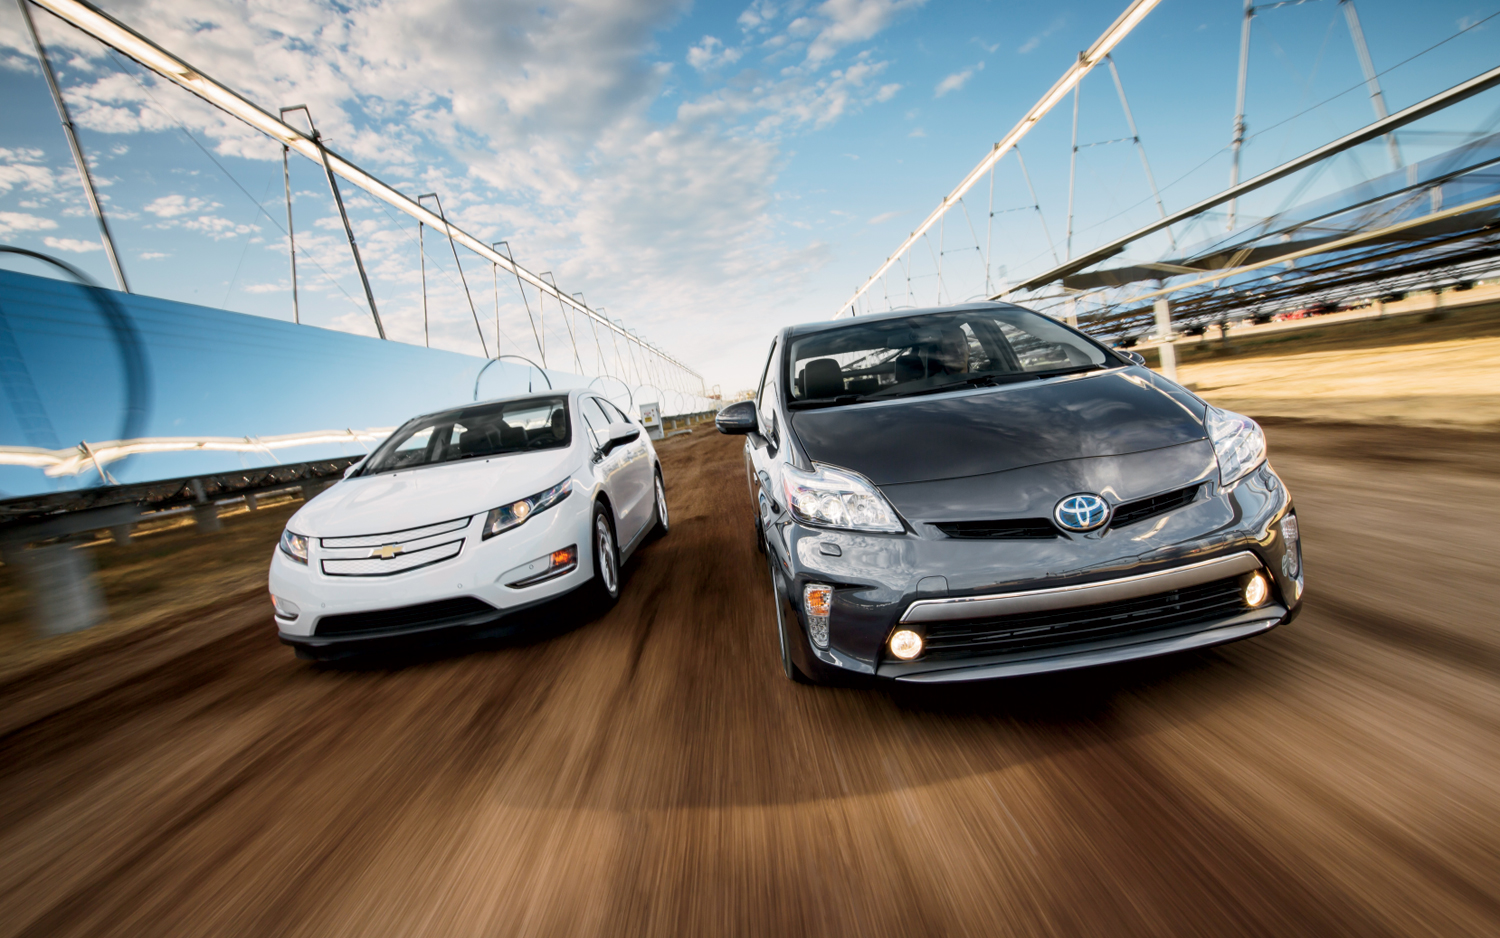 Chevrolet Volt 2016 Vs Toyota Prius Nissan Leaf Which One To